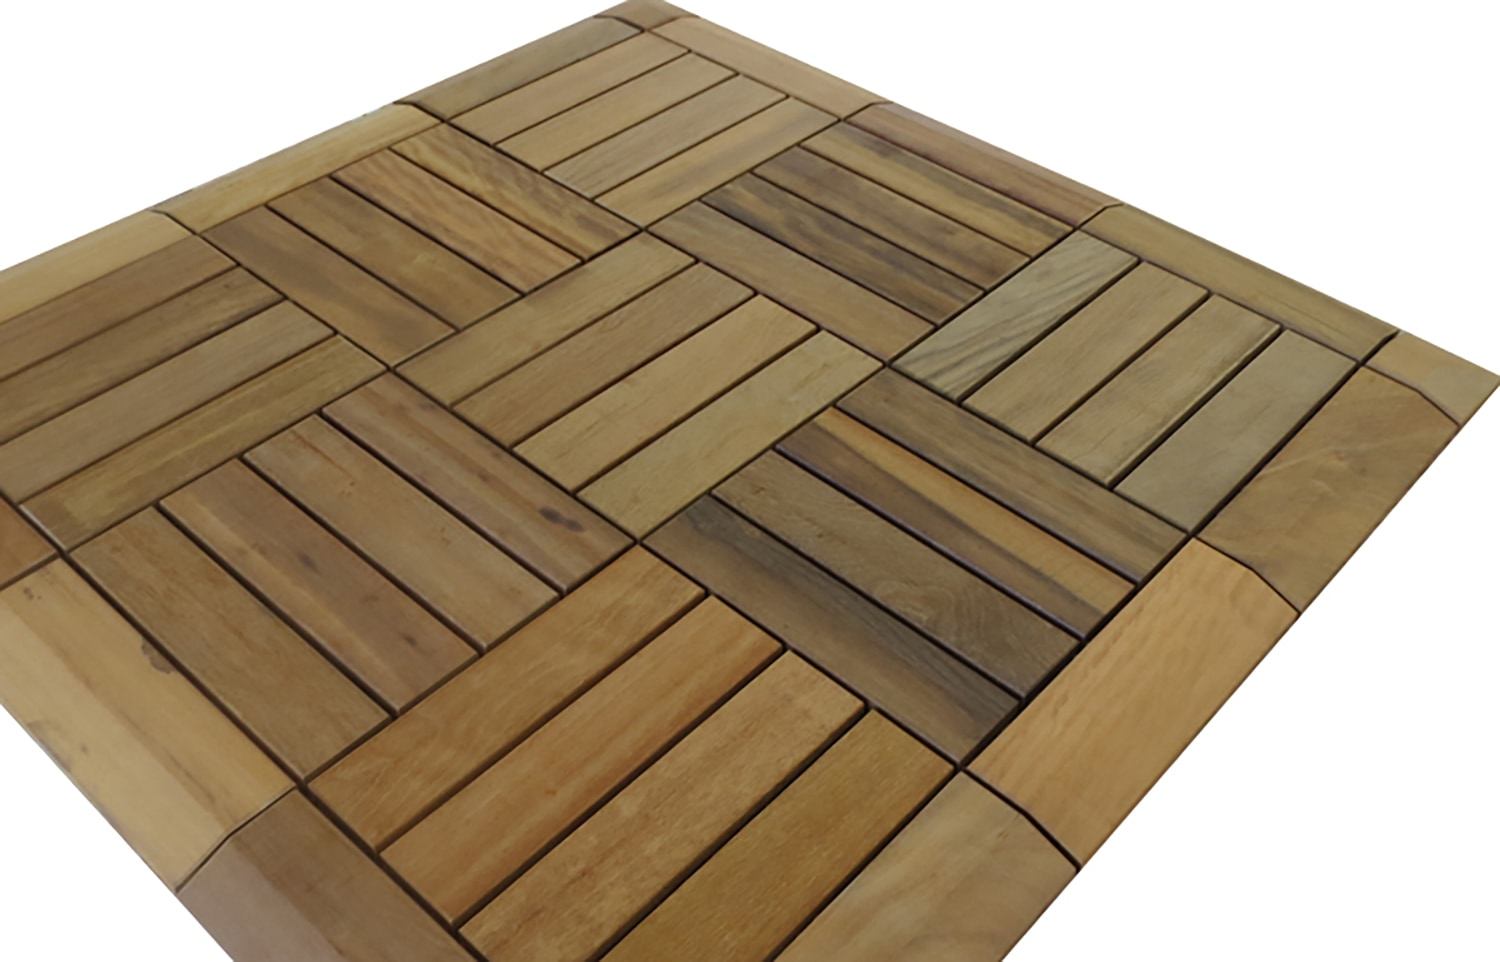 flexdeck brazilian hardwood deck tile interlocking deck